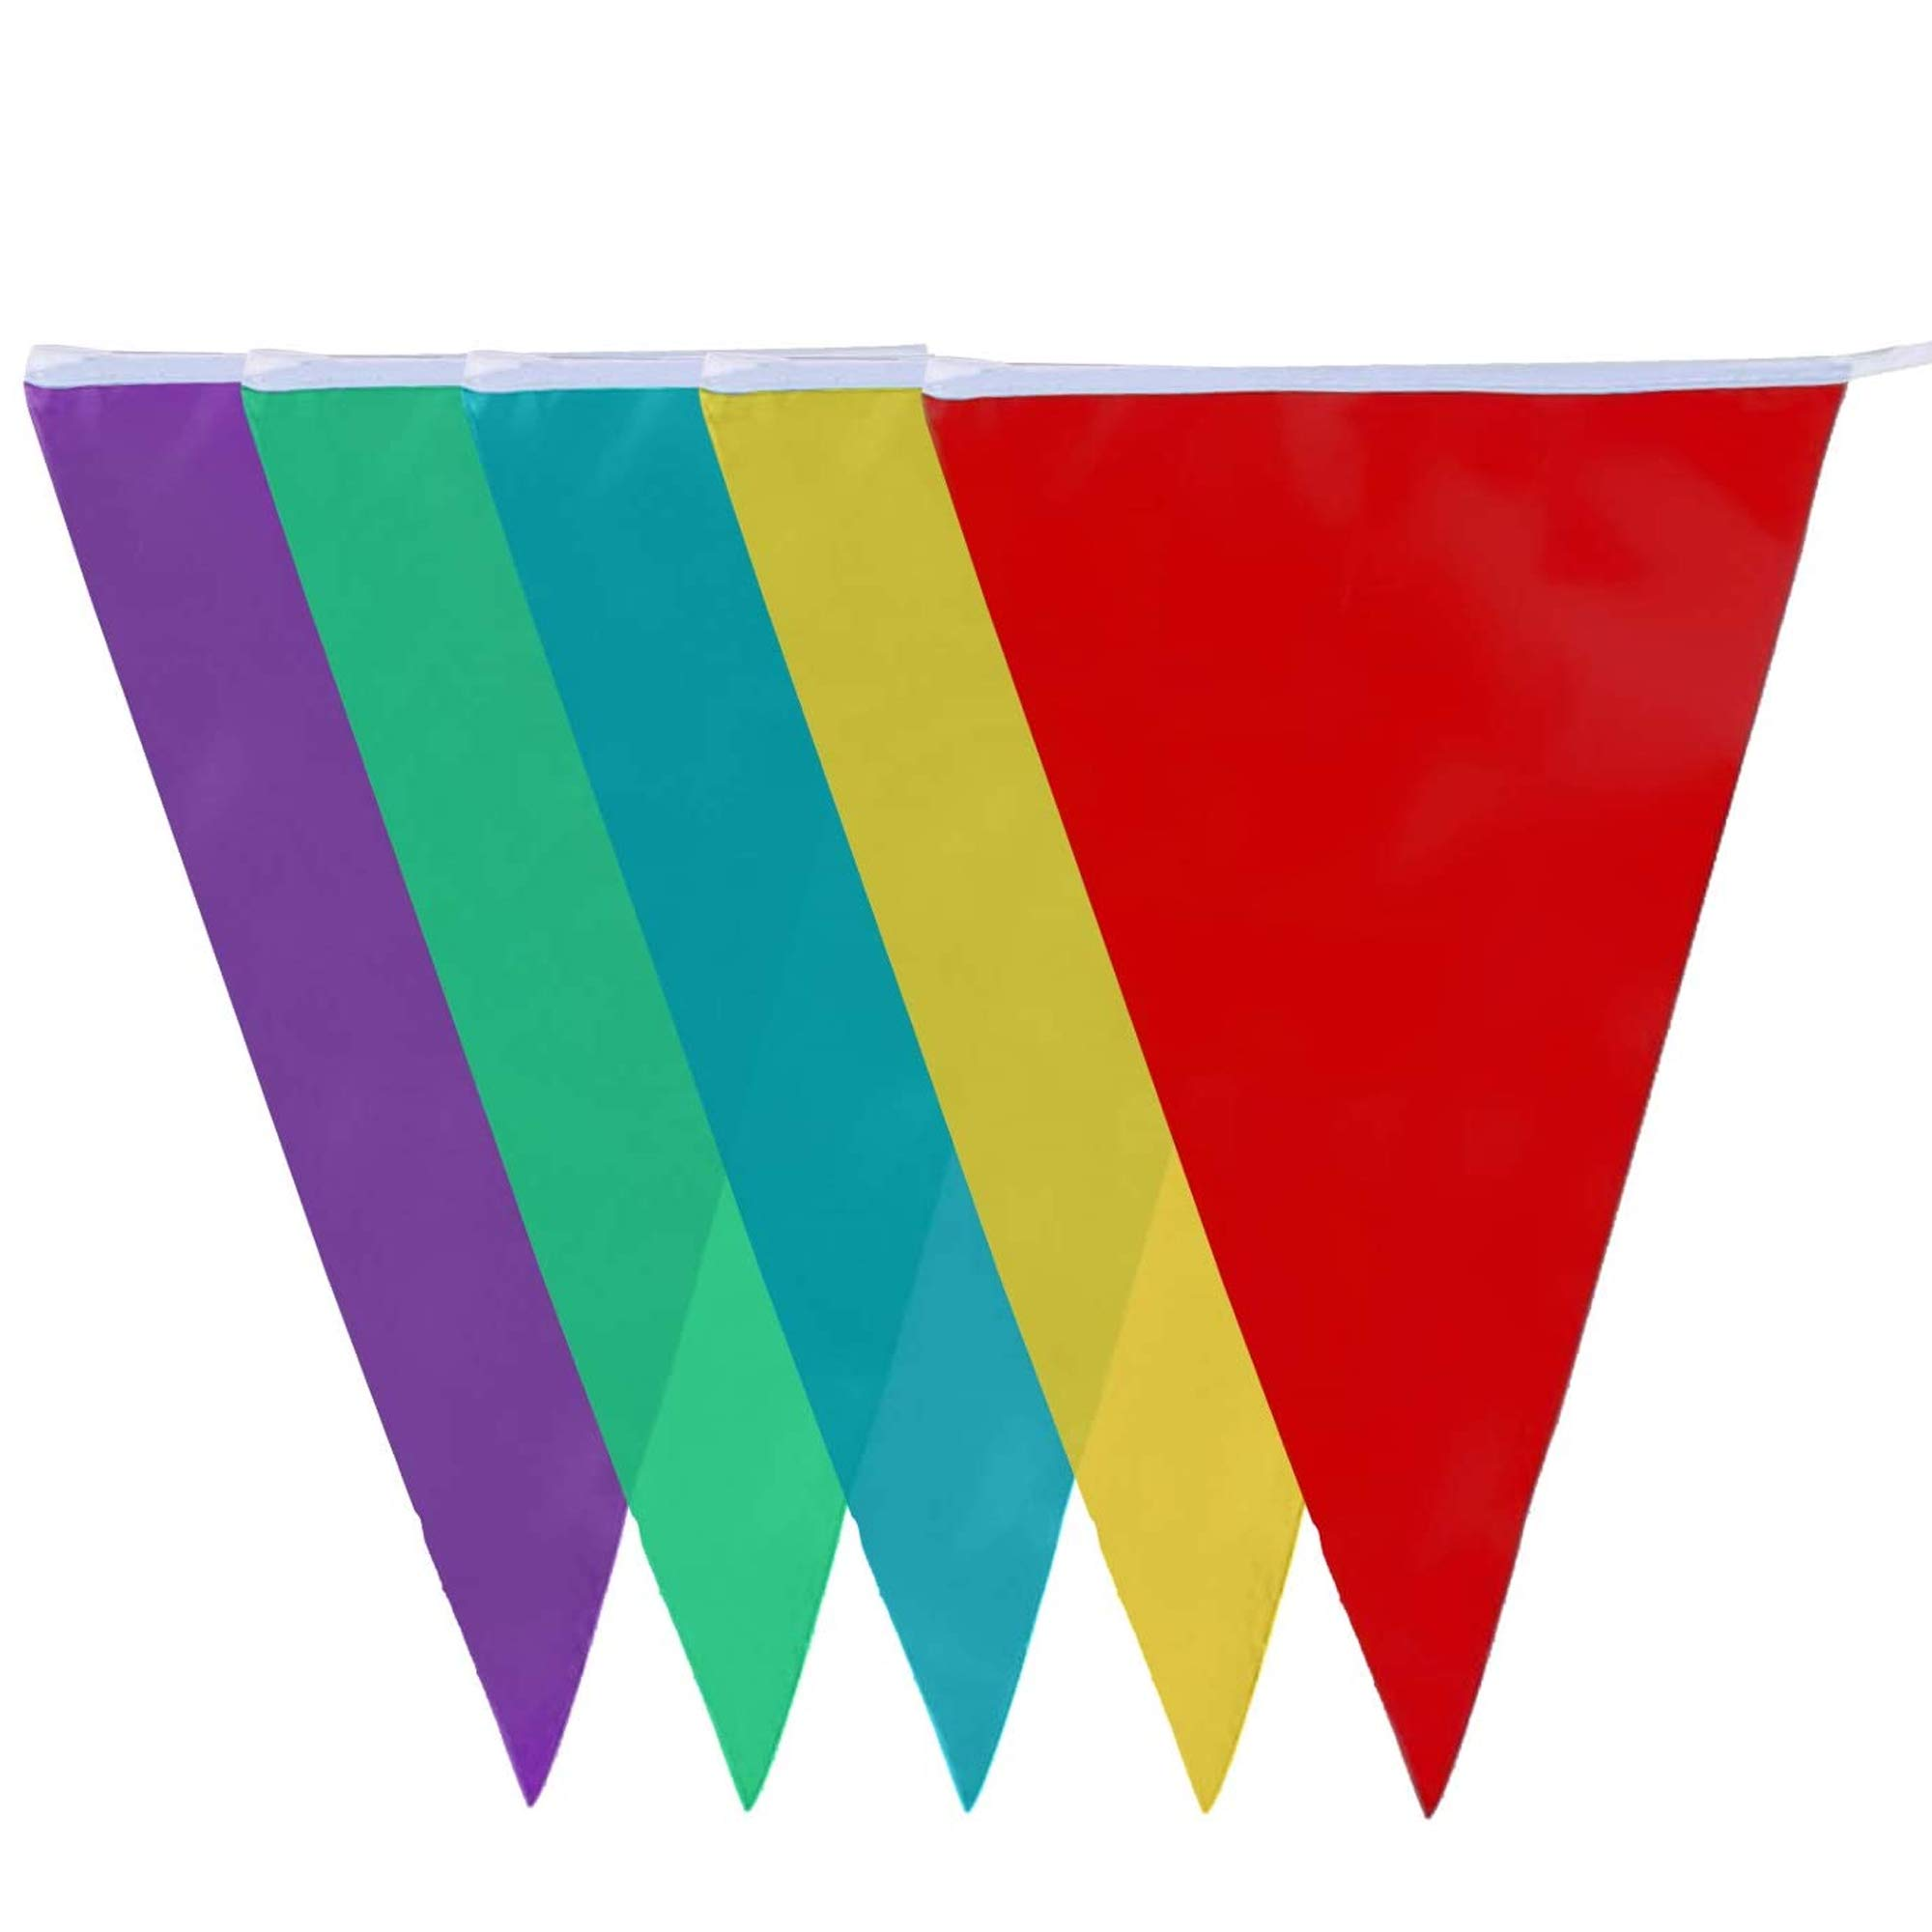 10-Metre PVC Double-Sided Bunting - 20 Flags